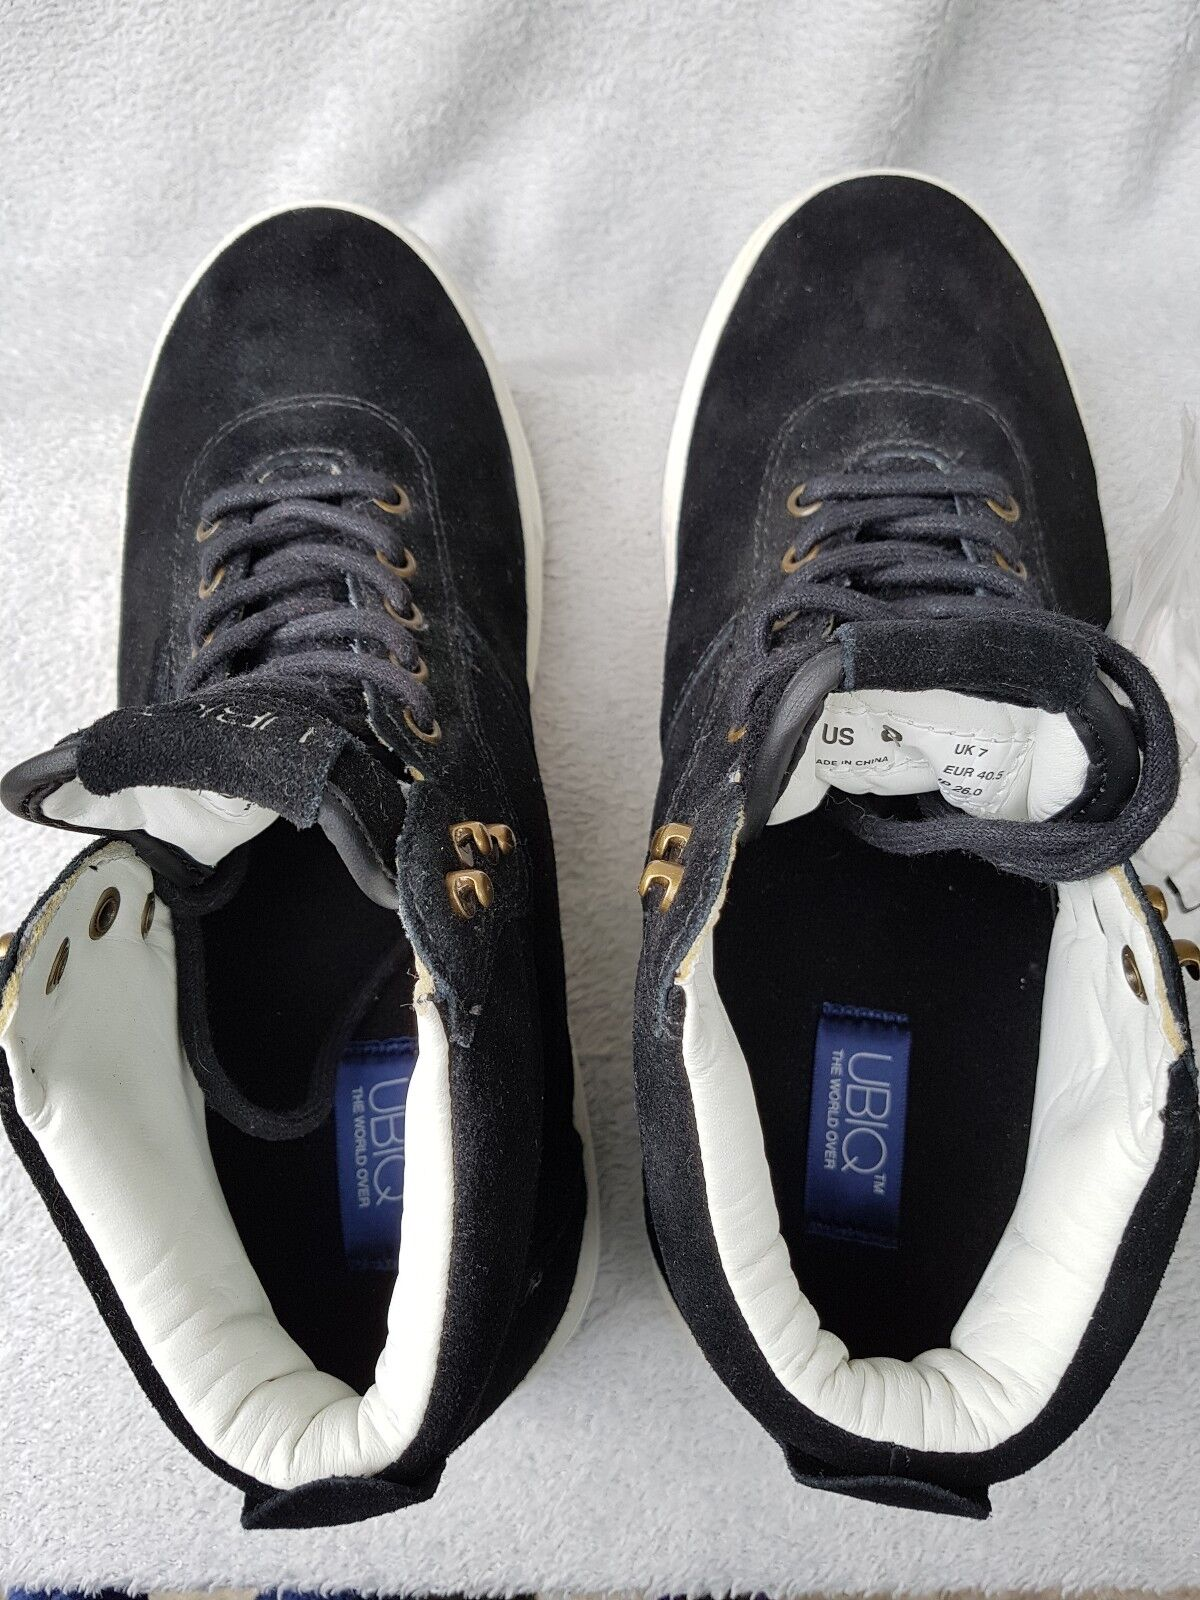 Black Suede Shoes Size 7 / trainers US 8/EUR 40.5  trainers / HI-TOPS UBIQ Volg UNWORN c5da2a